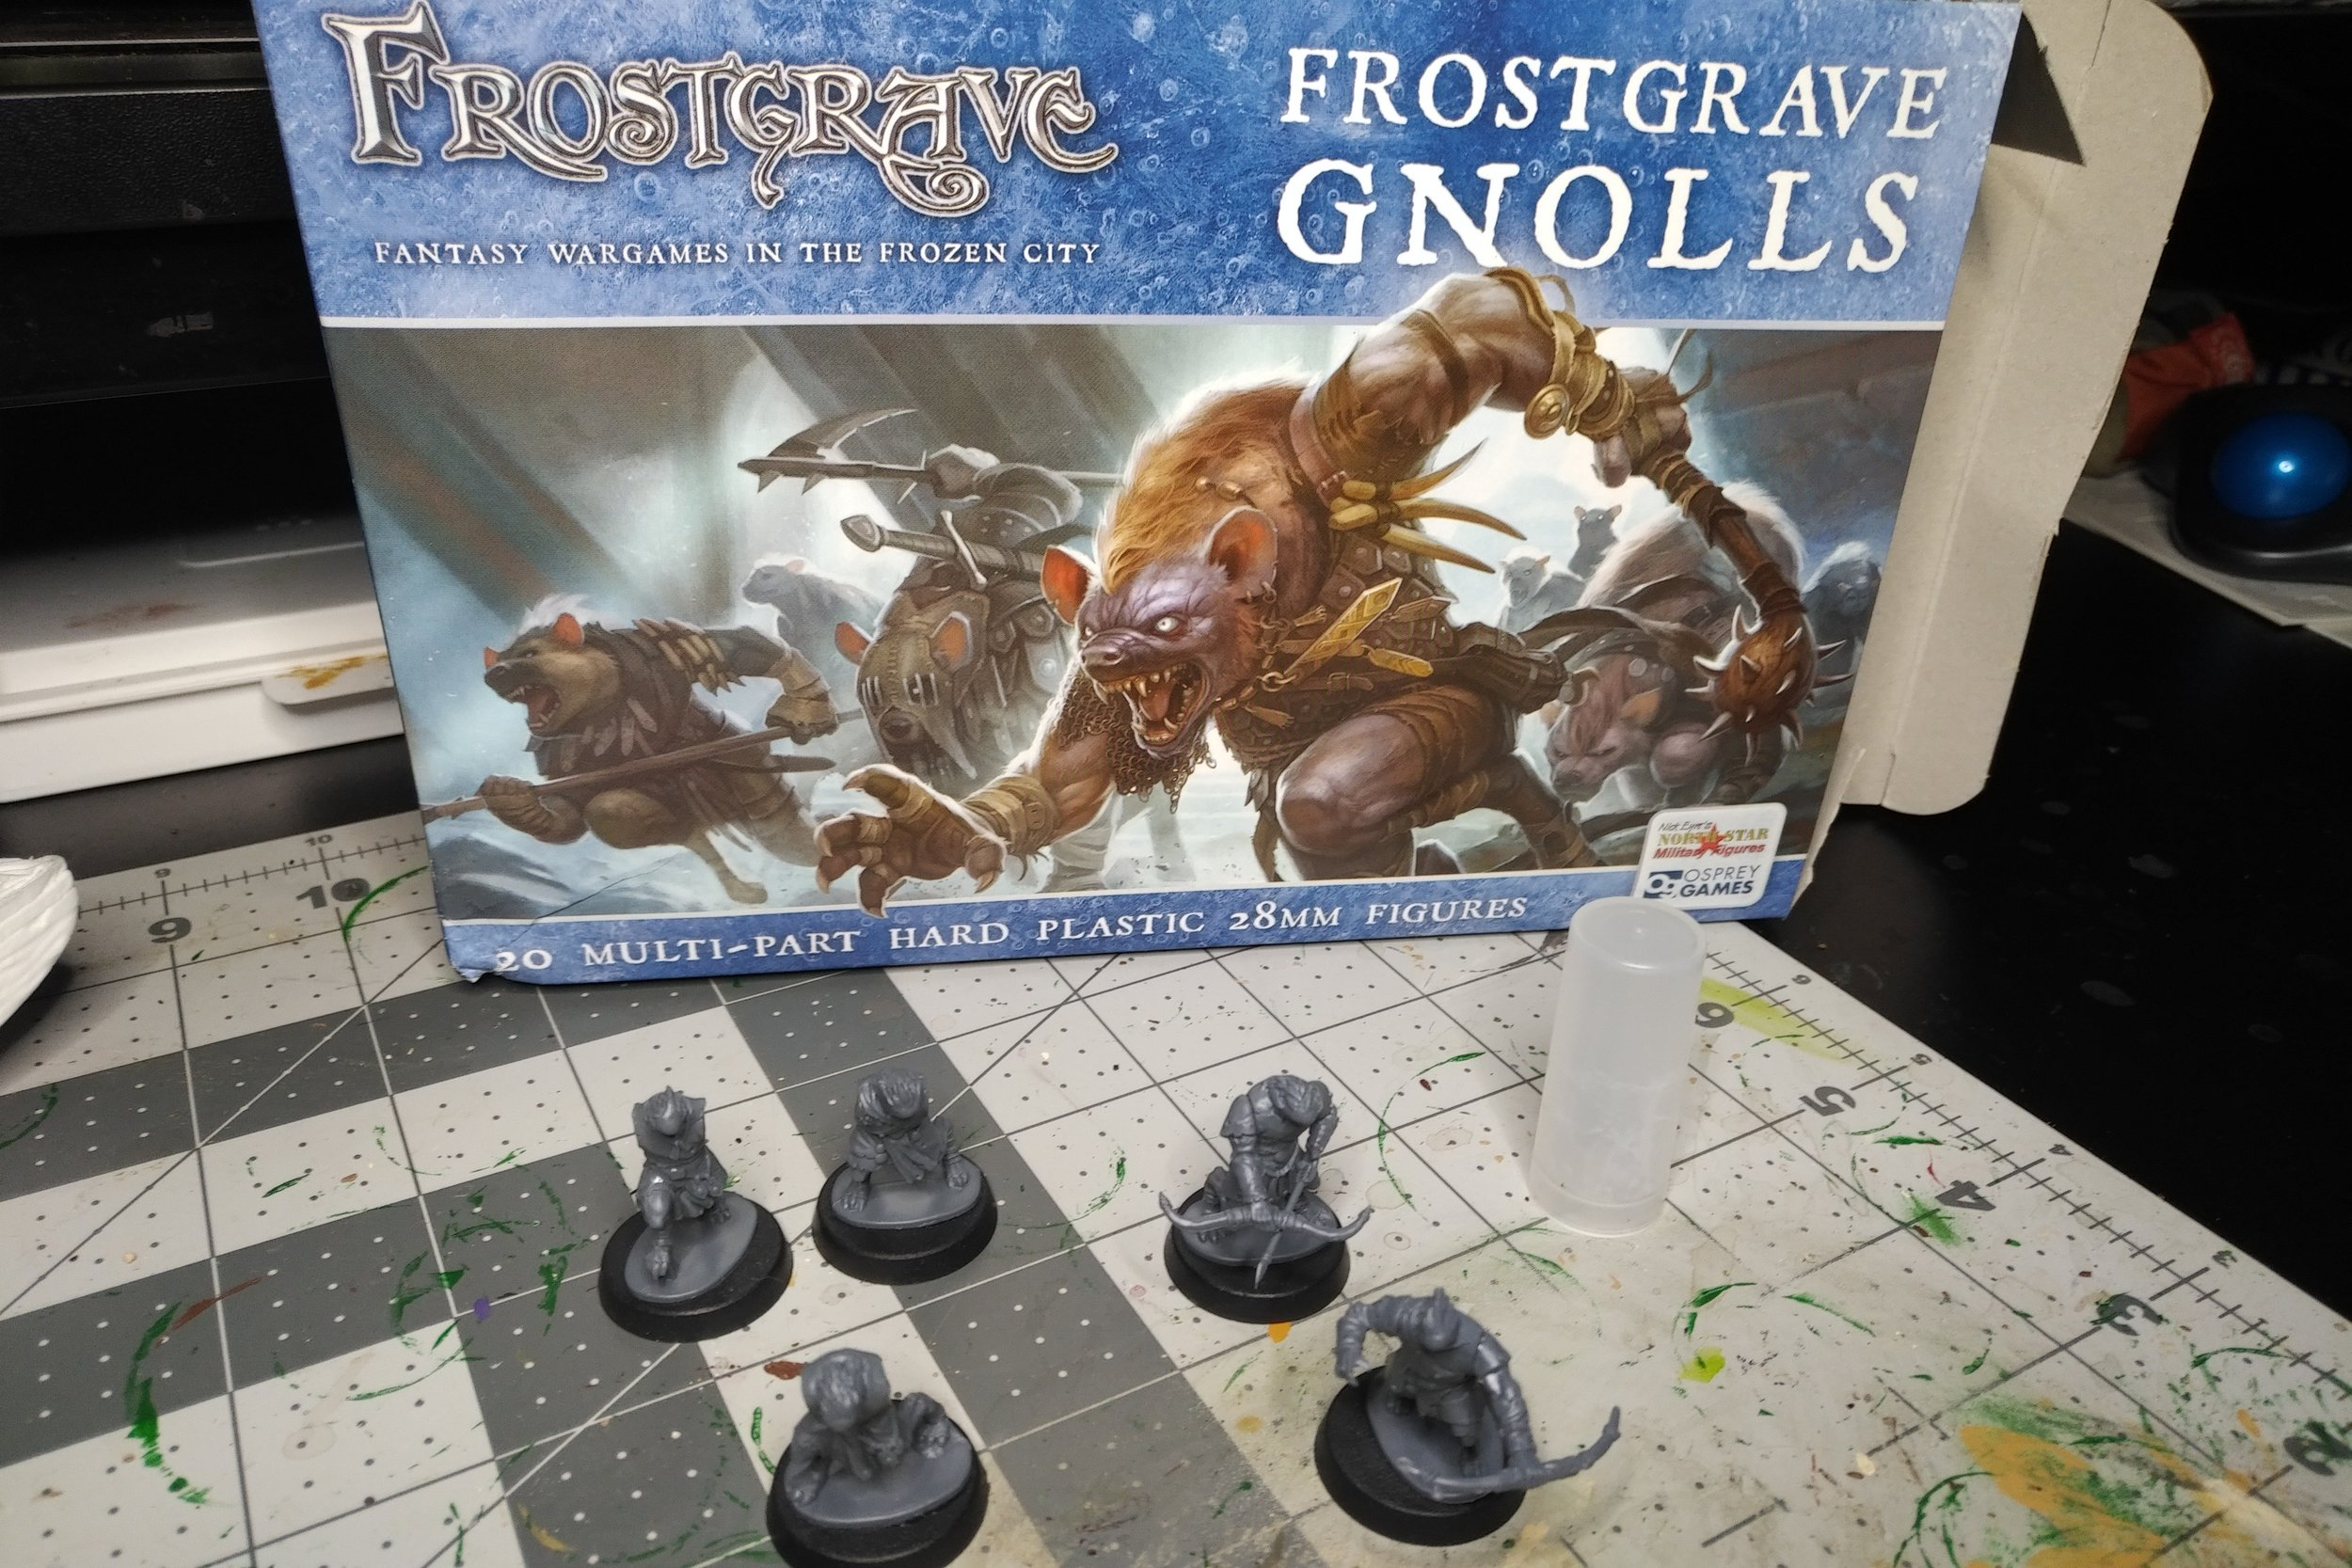 Frostgrave: Gnolls - Raiders and scavengers for hire